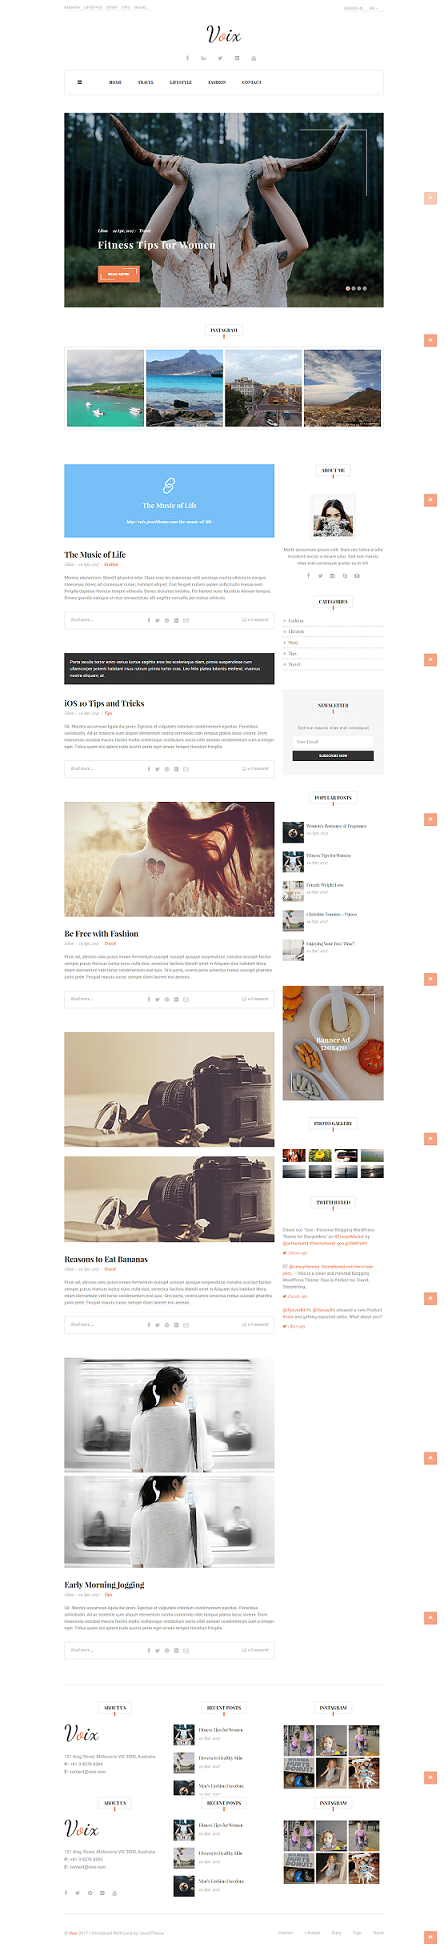 Voix – Personal WordPress Blog Themes for Storytellers